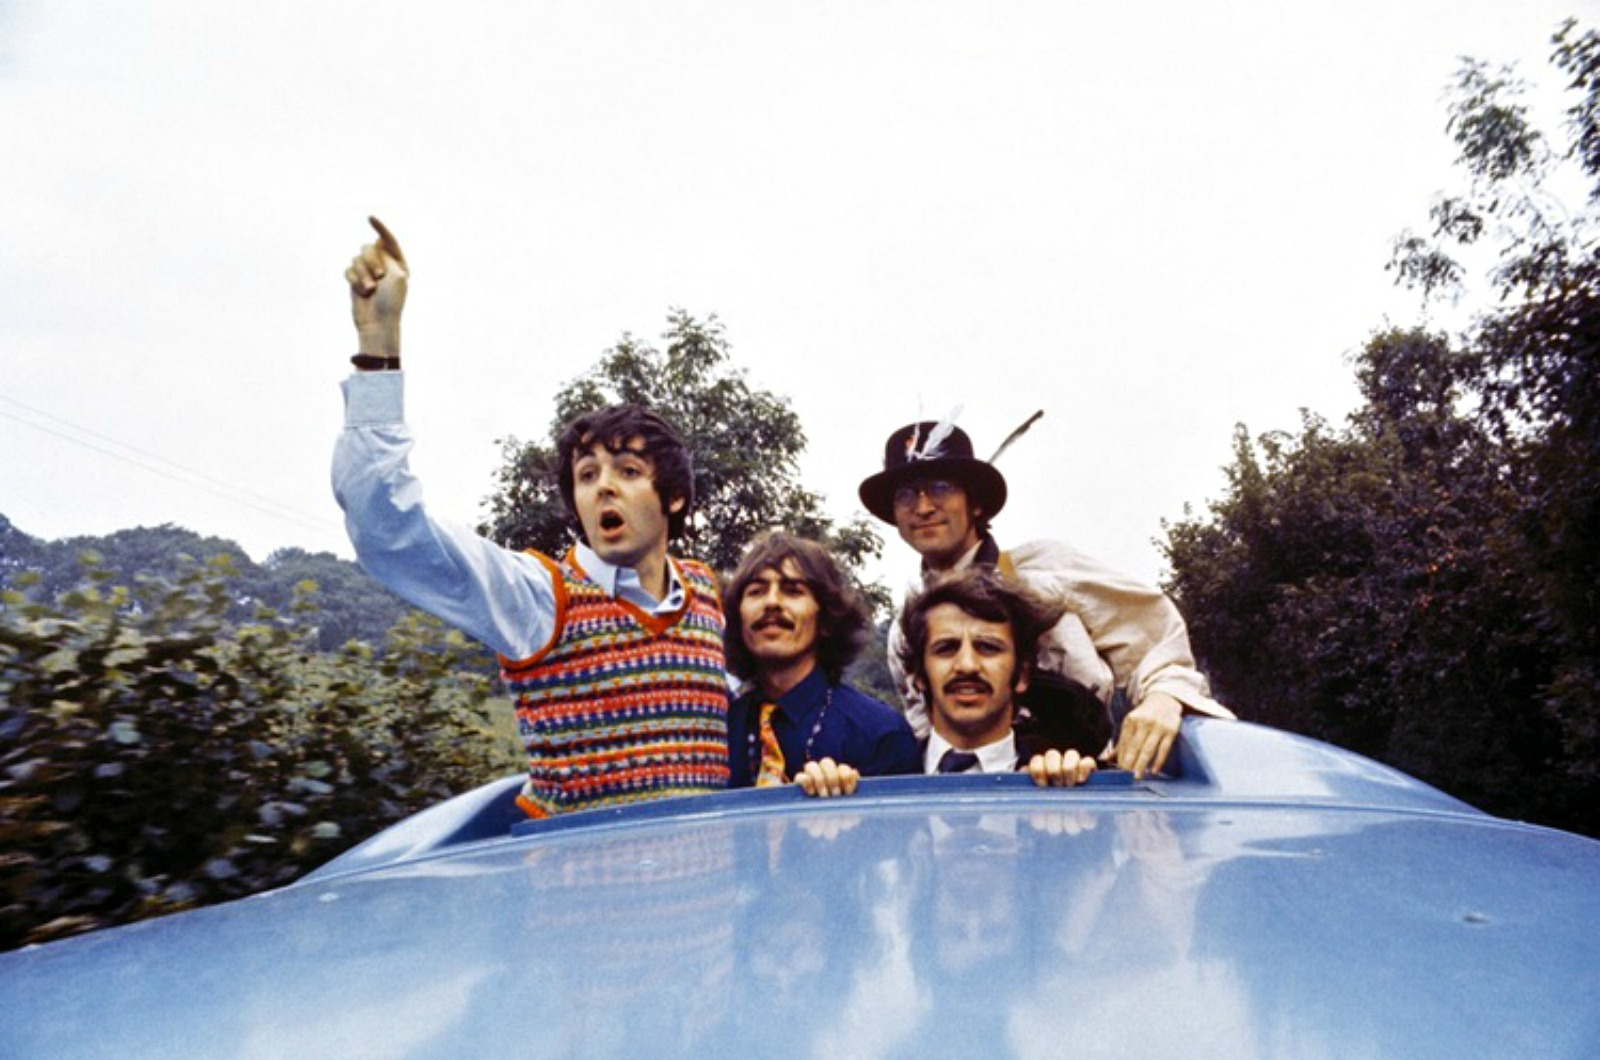 misterioso cover a The Beatles